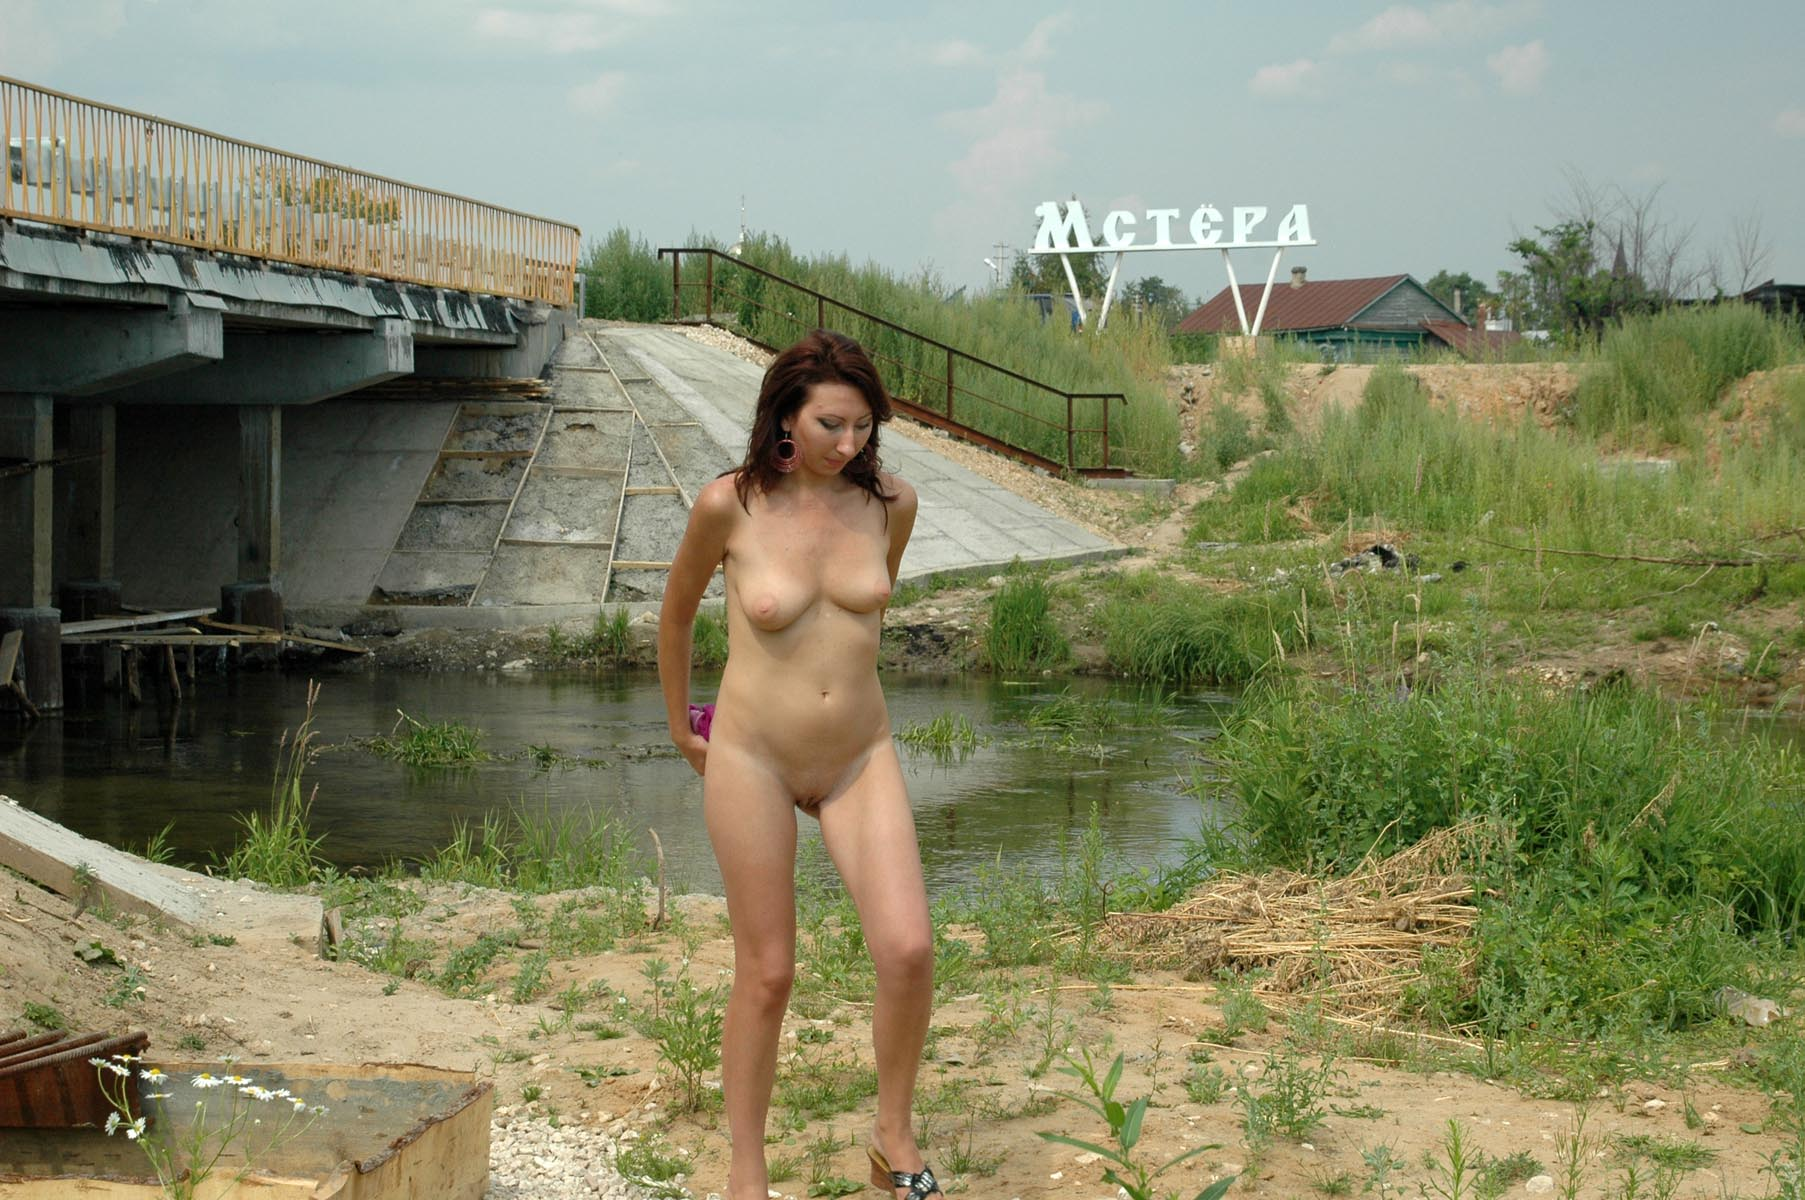 Girls naked in the country exposed photo